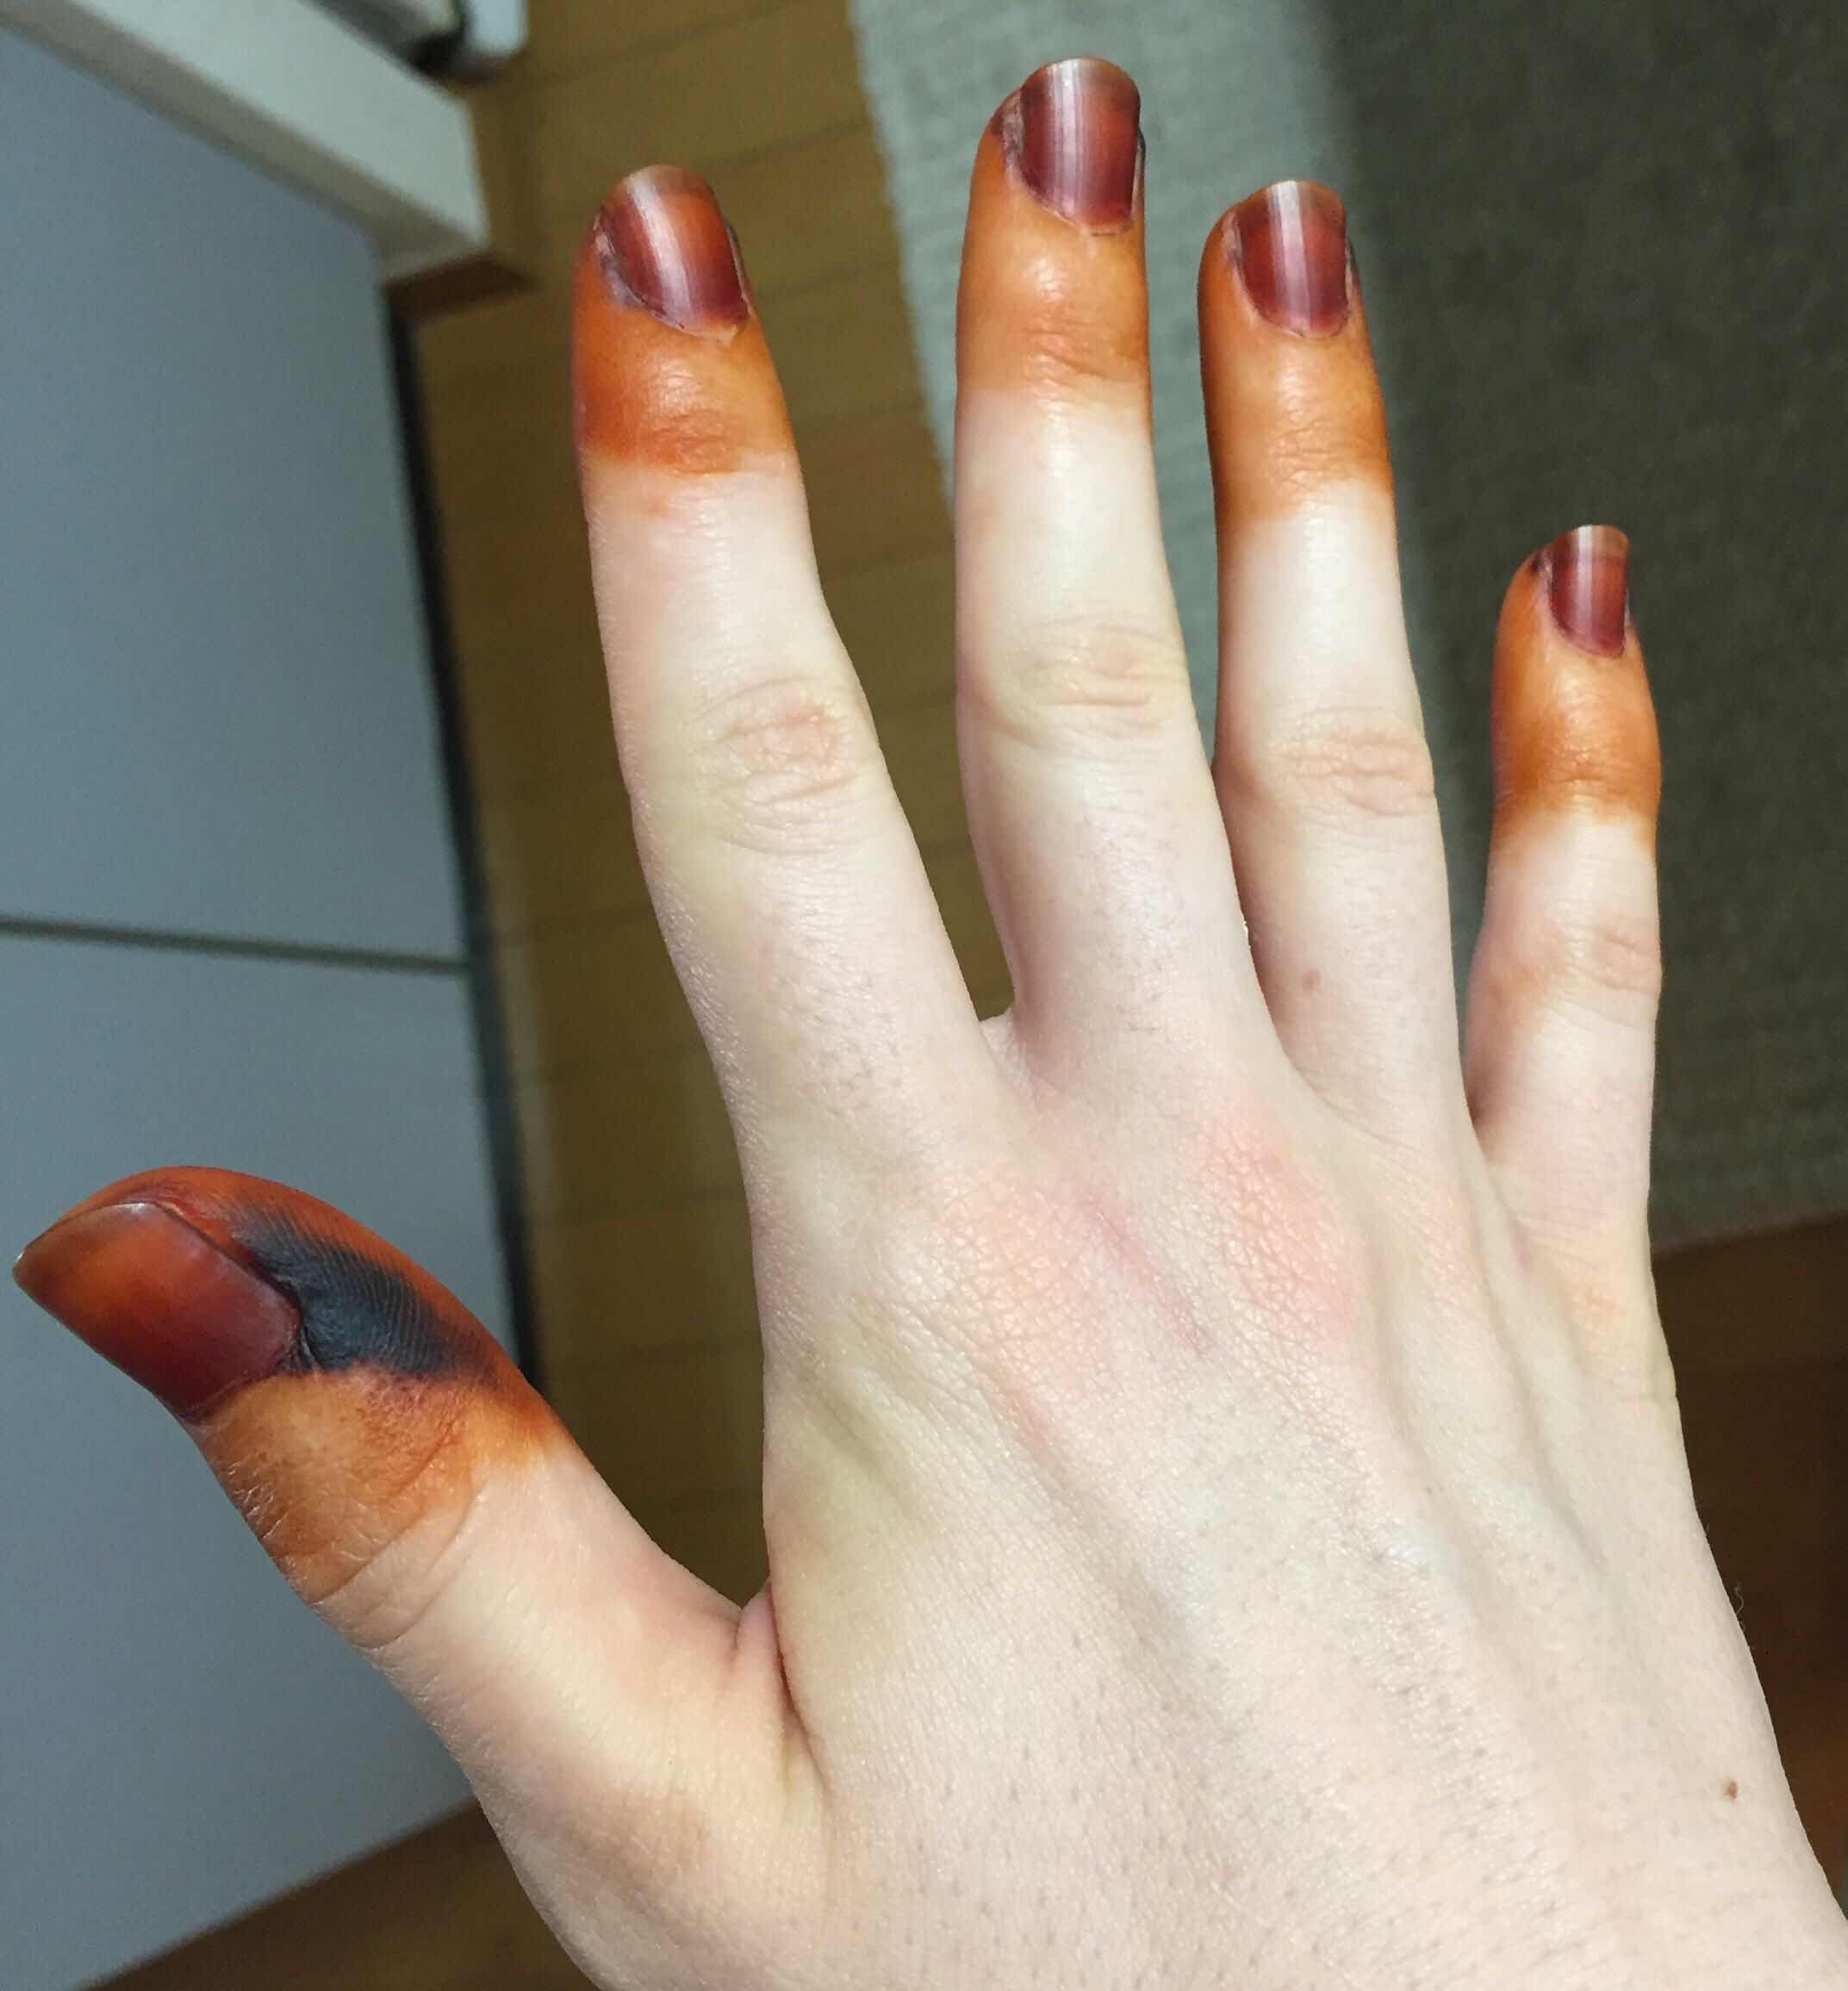 Ten How To Get Hair Dye Off Hands Tips You Need To Learn Now How